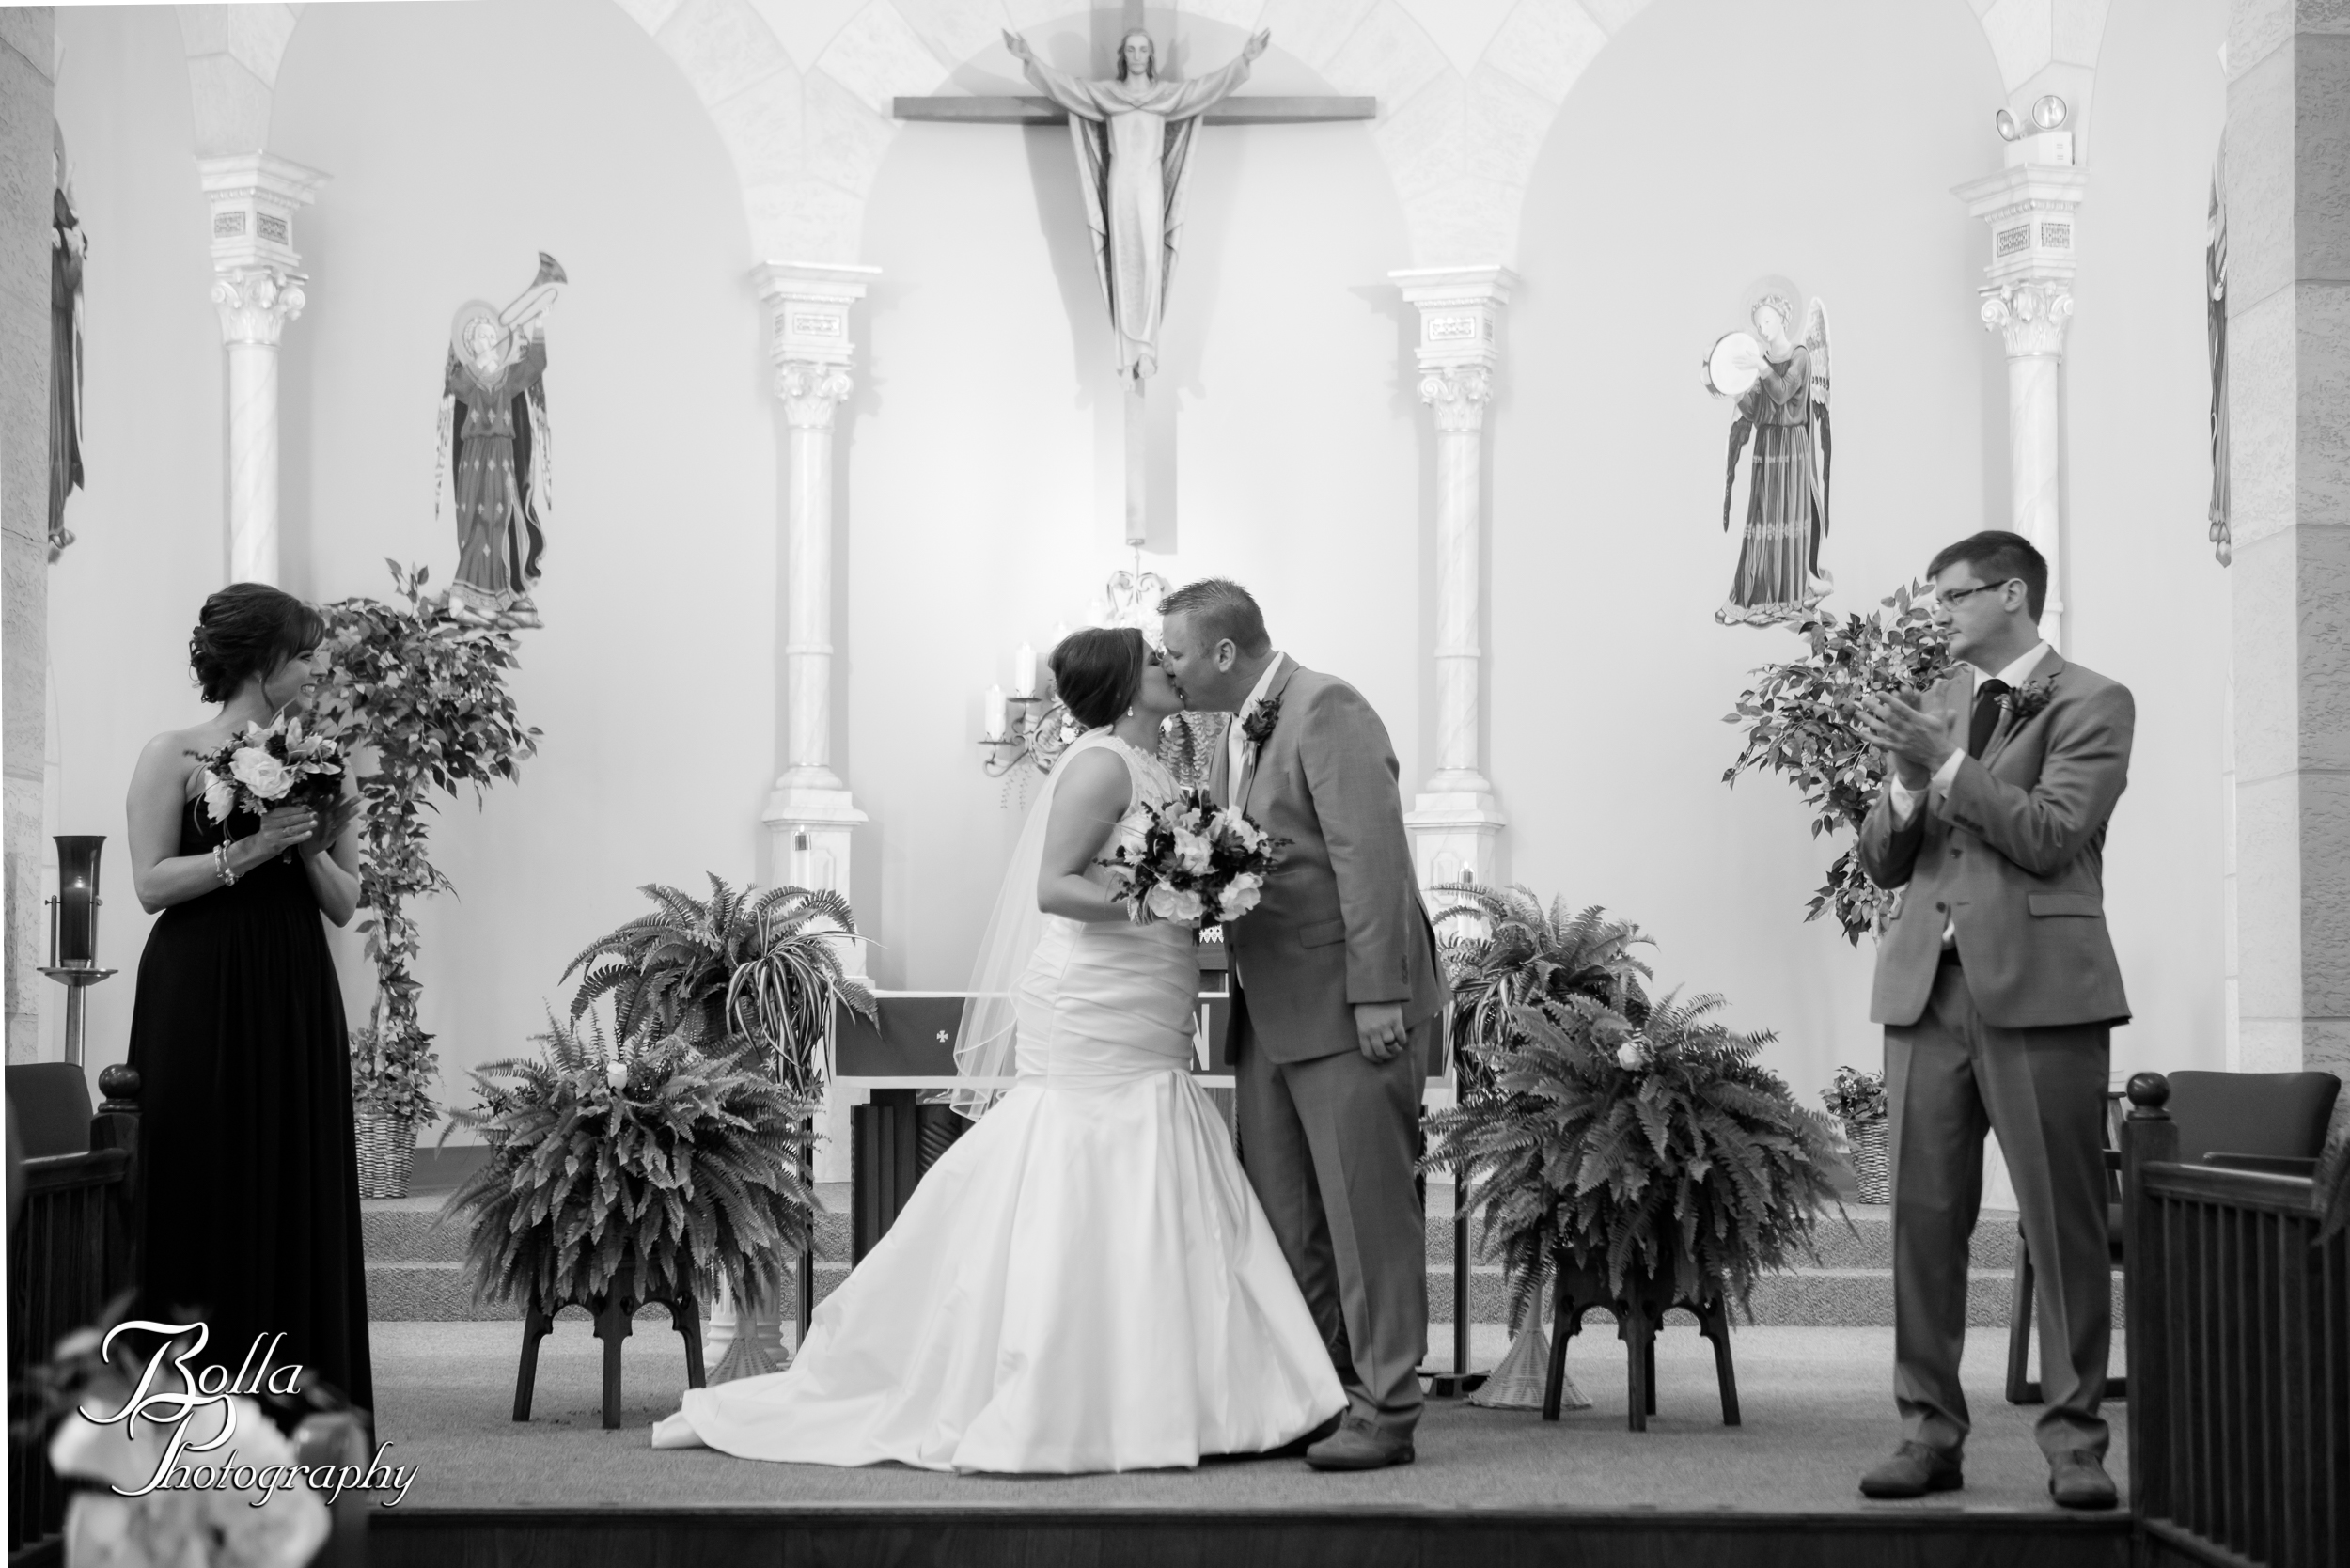 Bolla_photography_edwardsville_wedding_photographer_st_louis_weddings_Heinzmann-0249.jpg